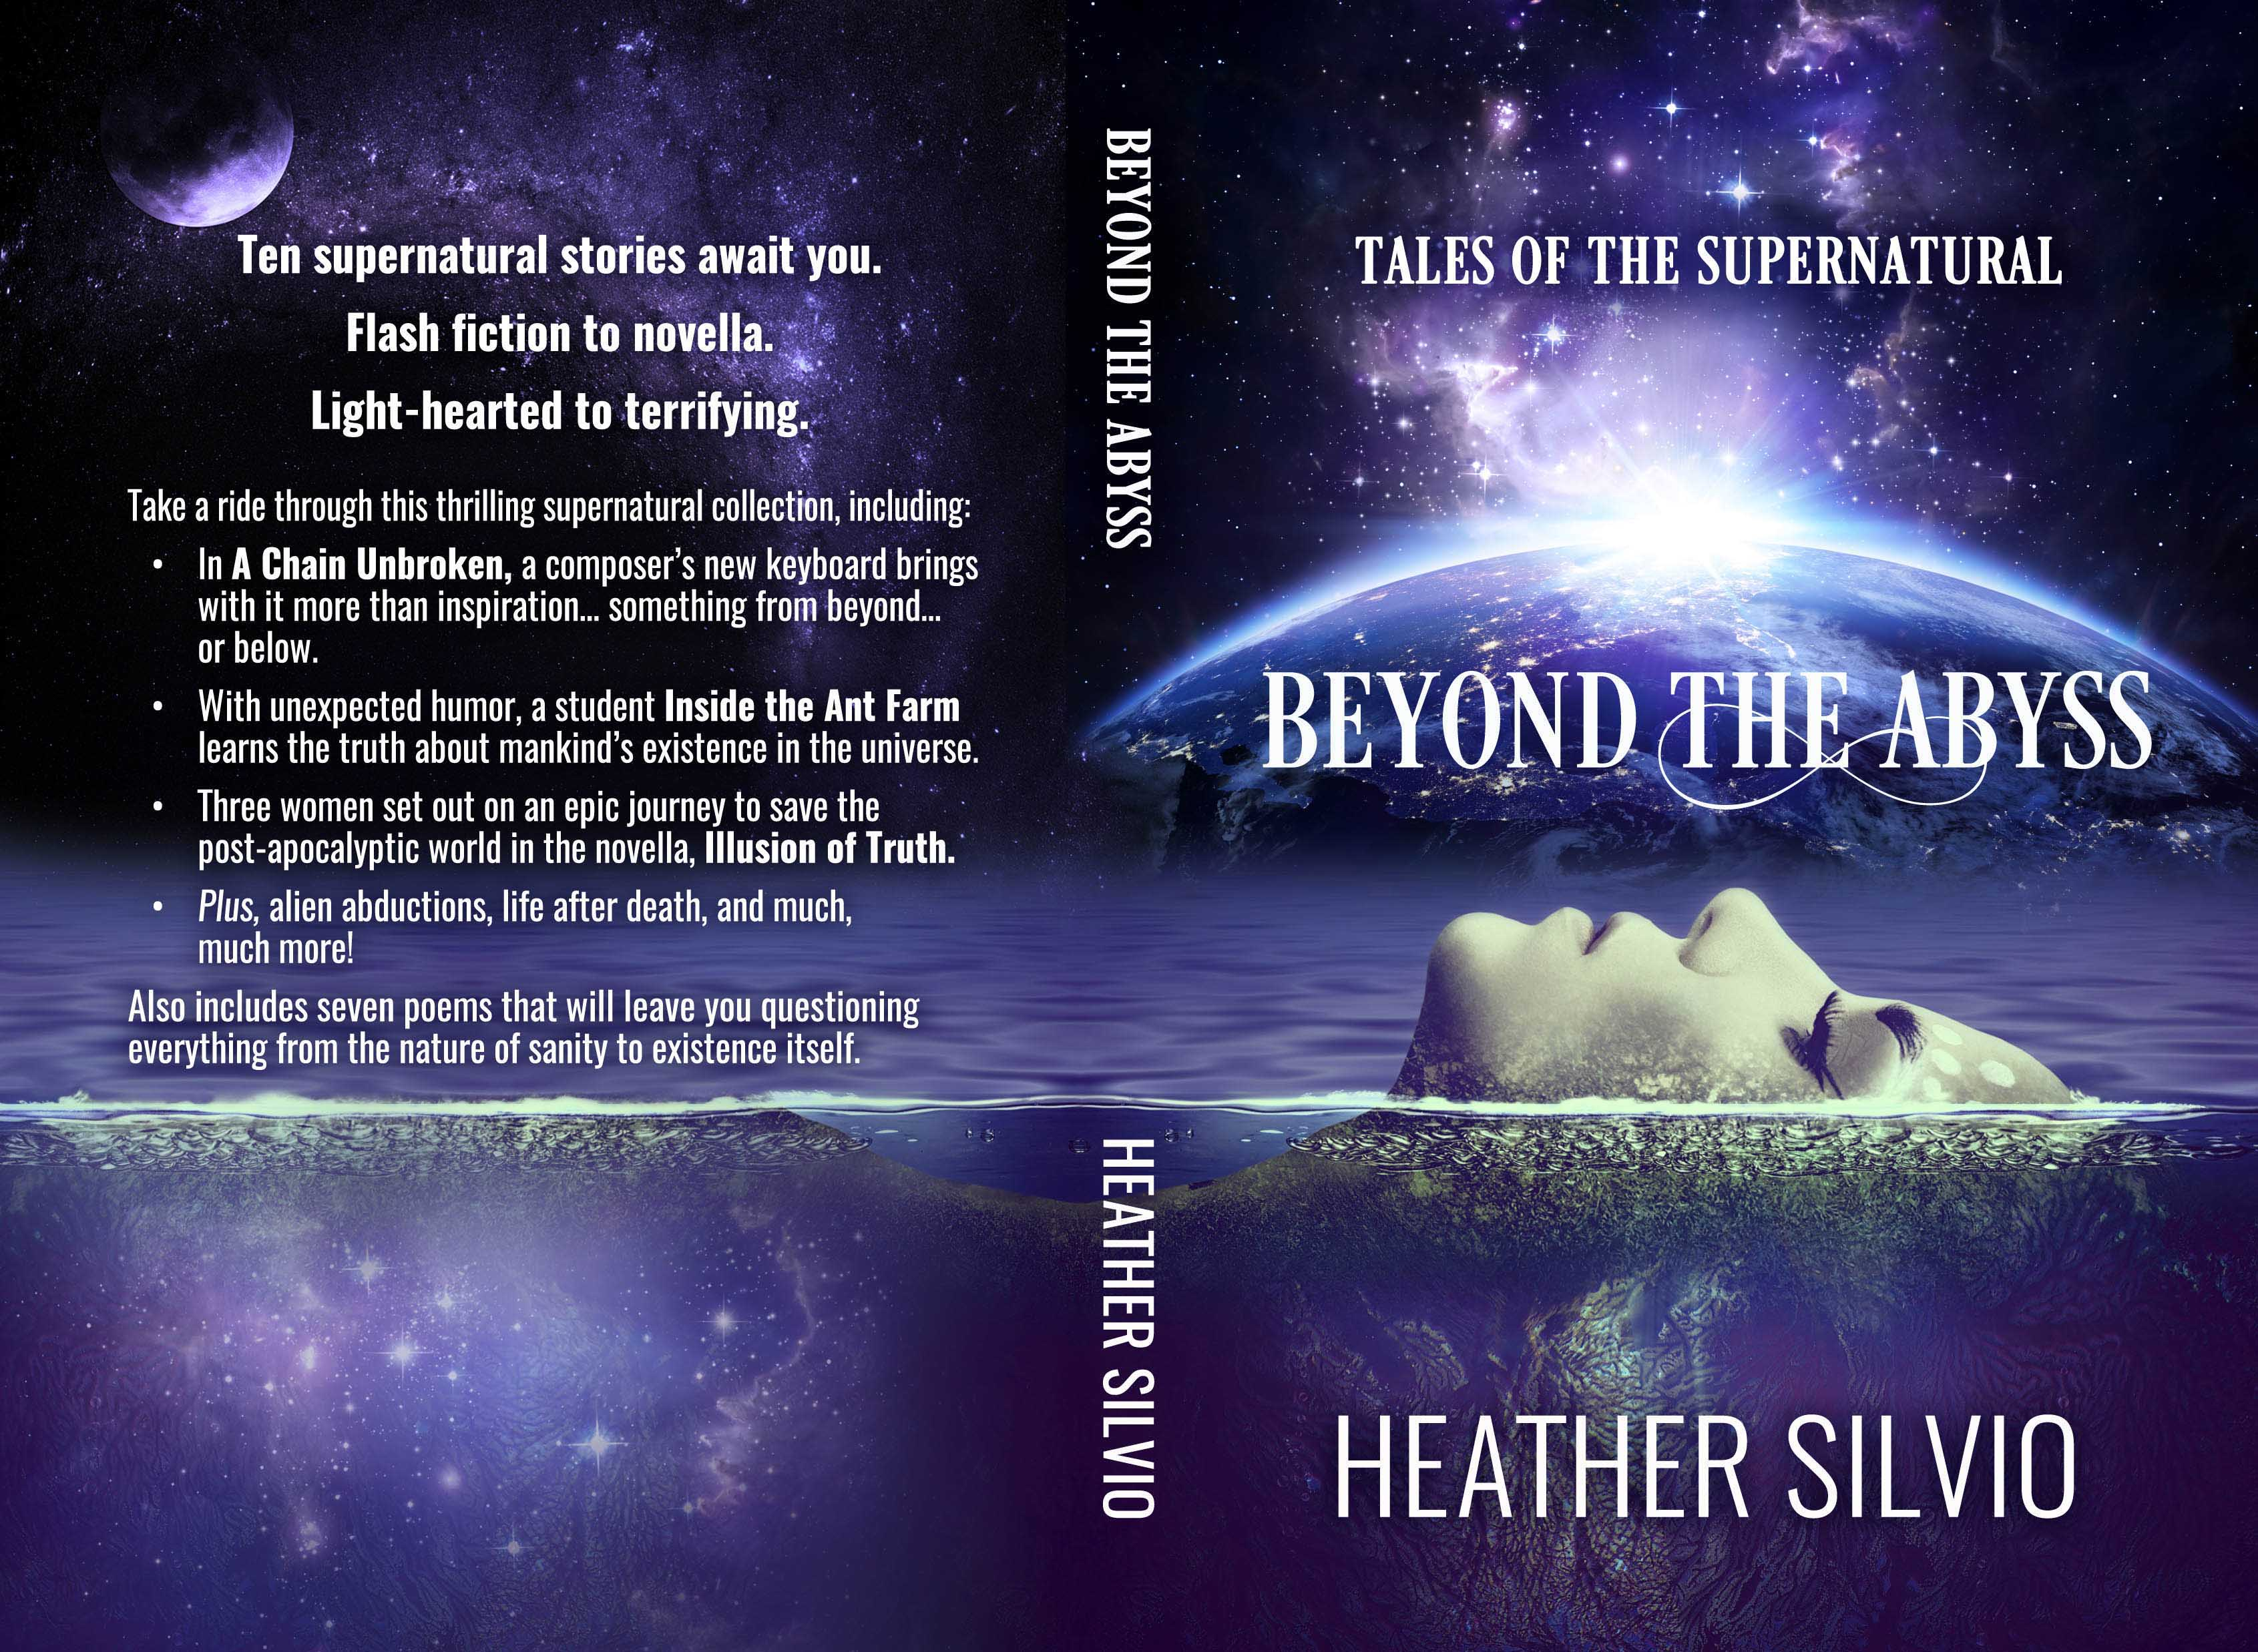 Beyond the Abyss Supernatural paperback